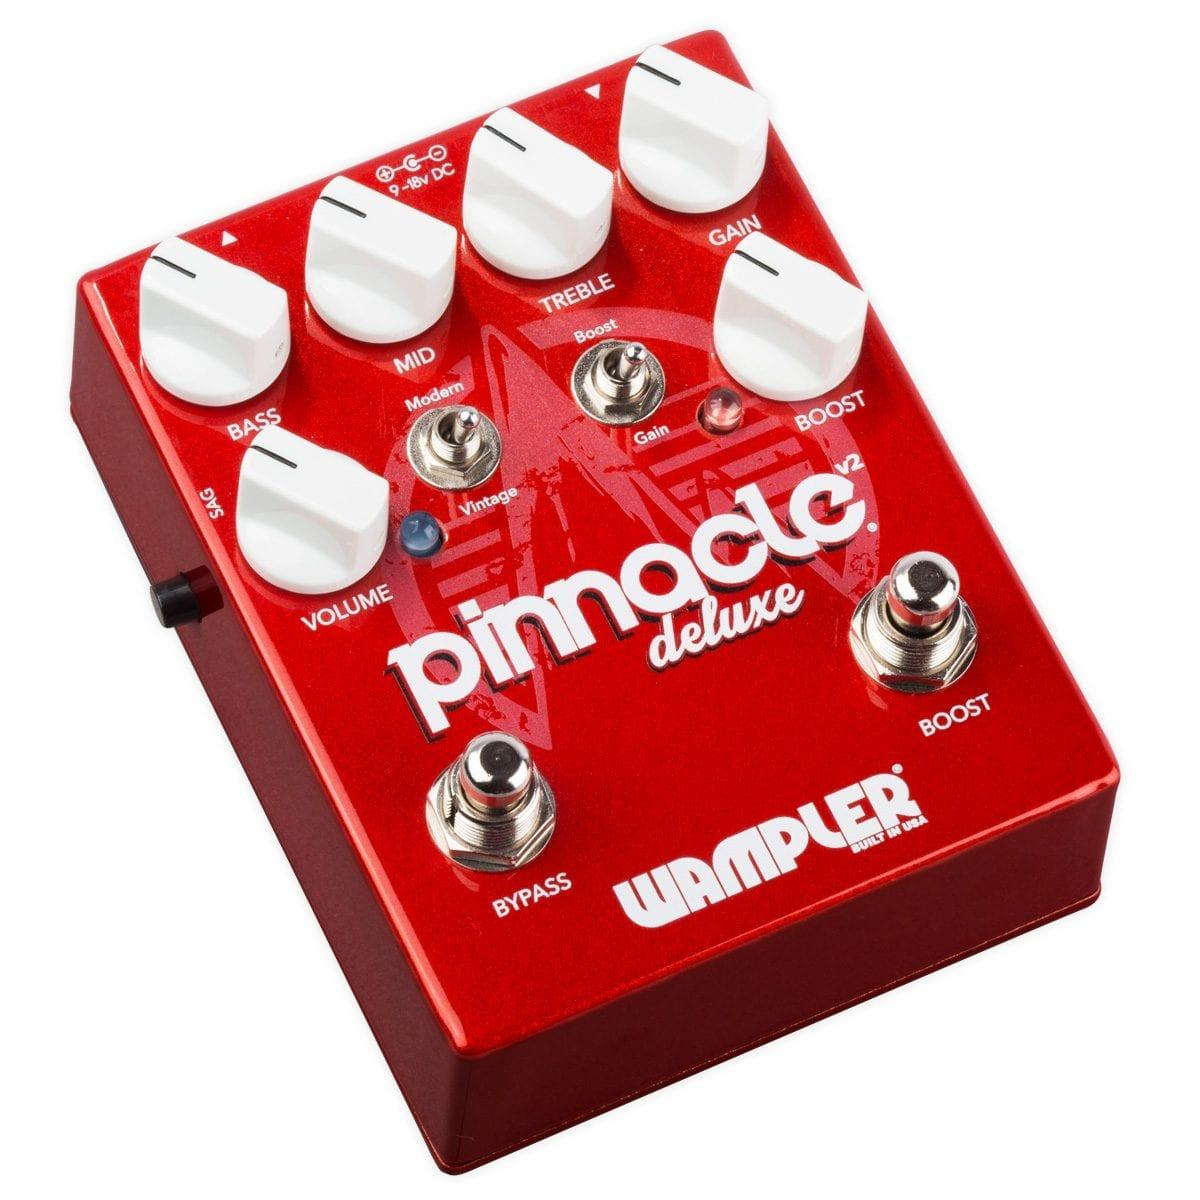 Wampler Pinnacle Deluxe v2-13426